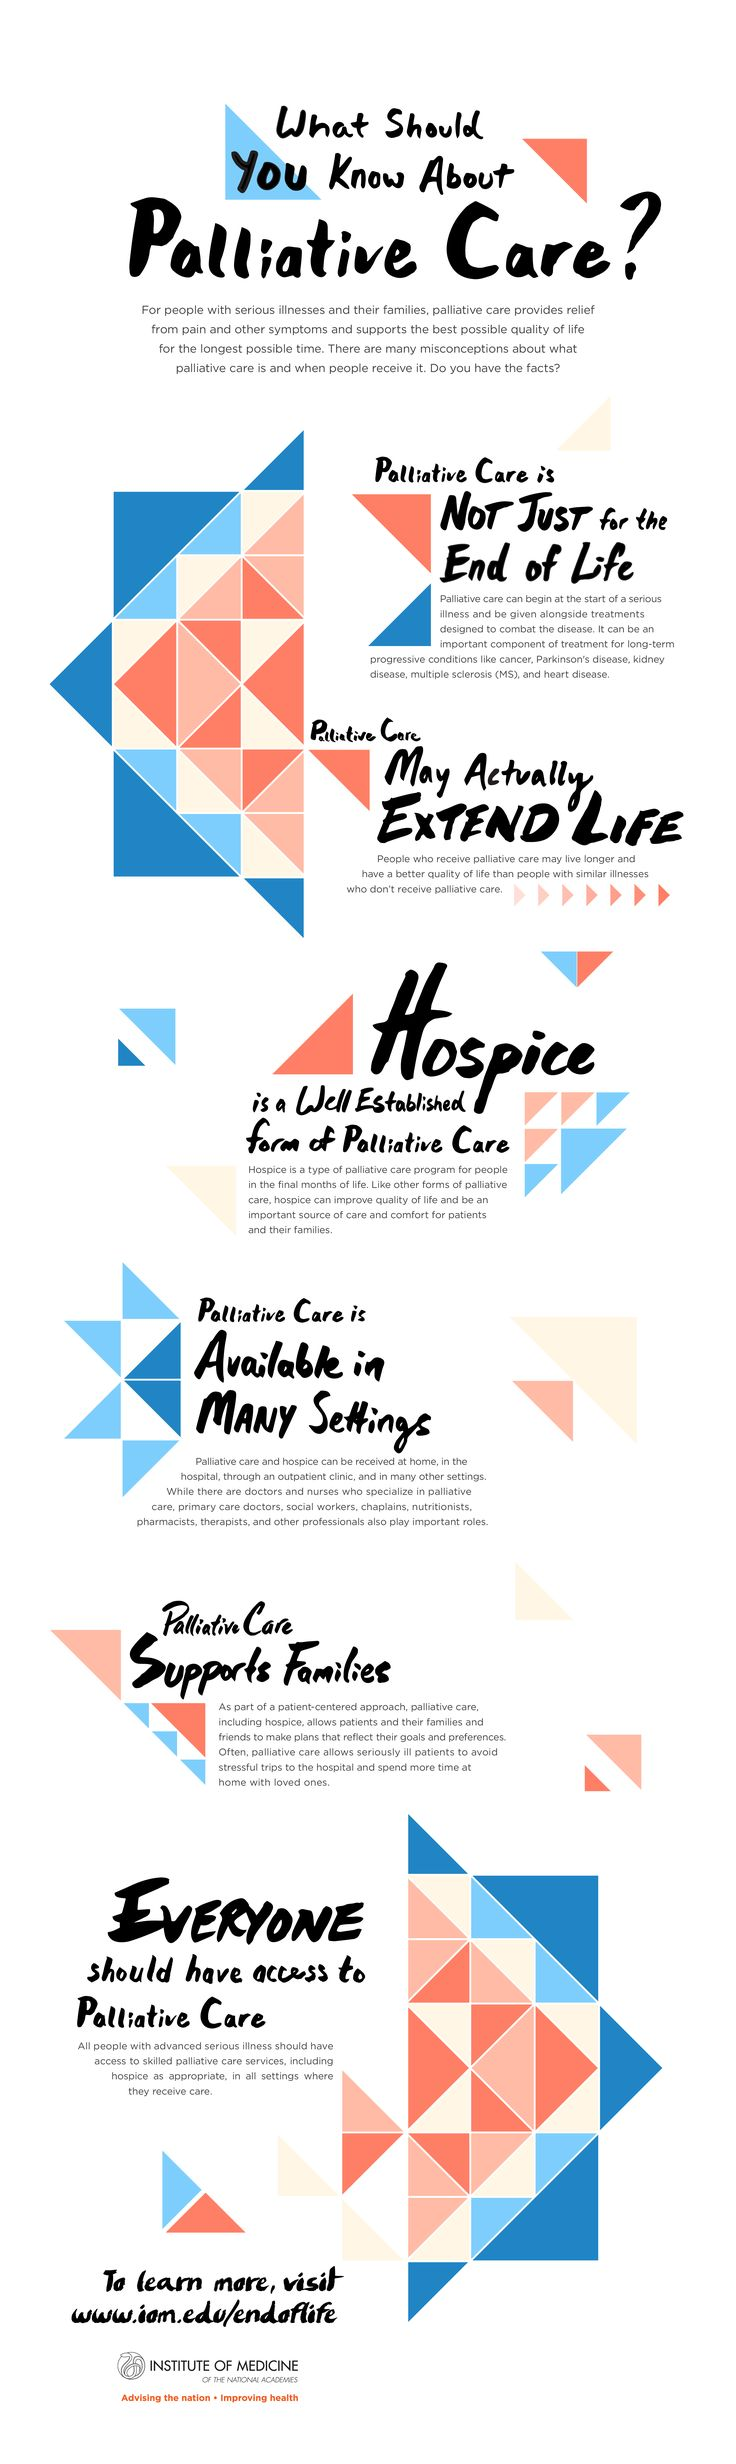 images about palliative care bad news palliative care graphics from national acadamies dying in america